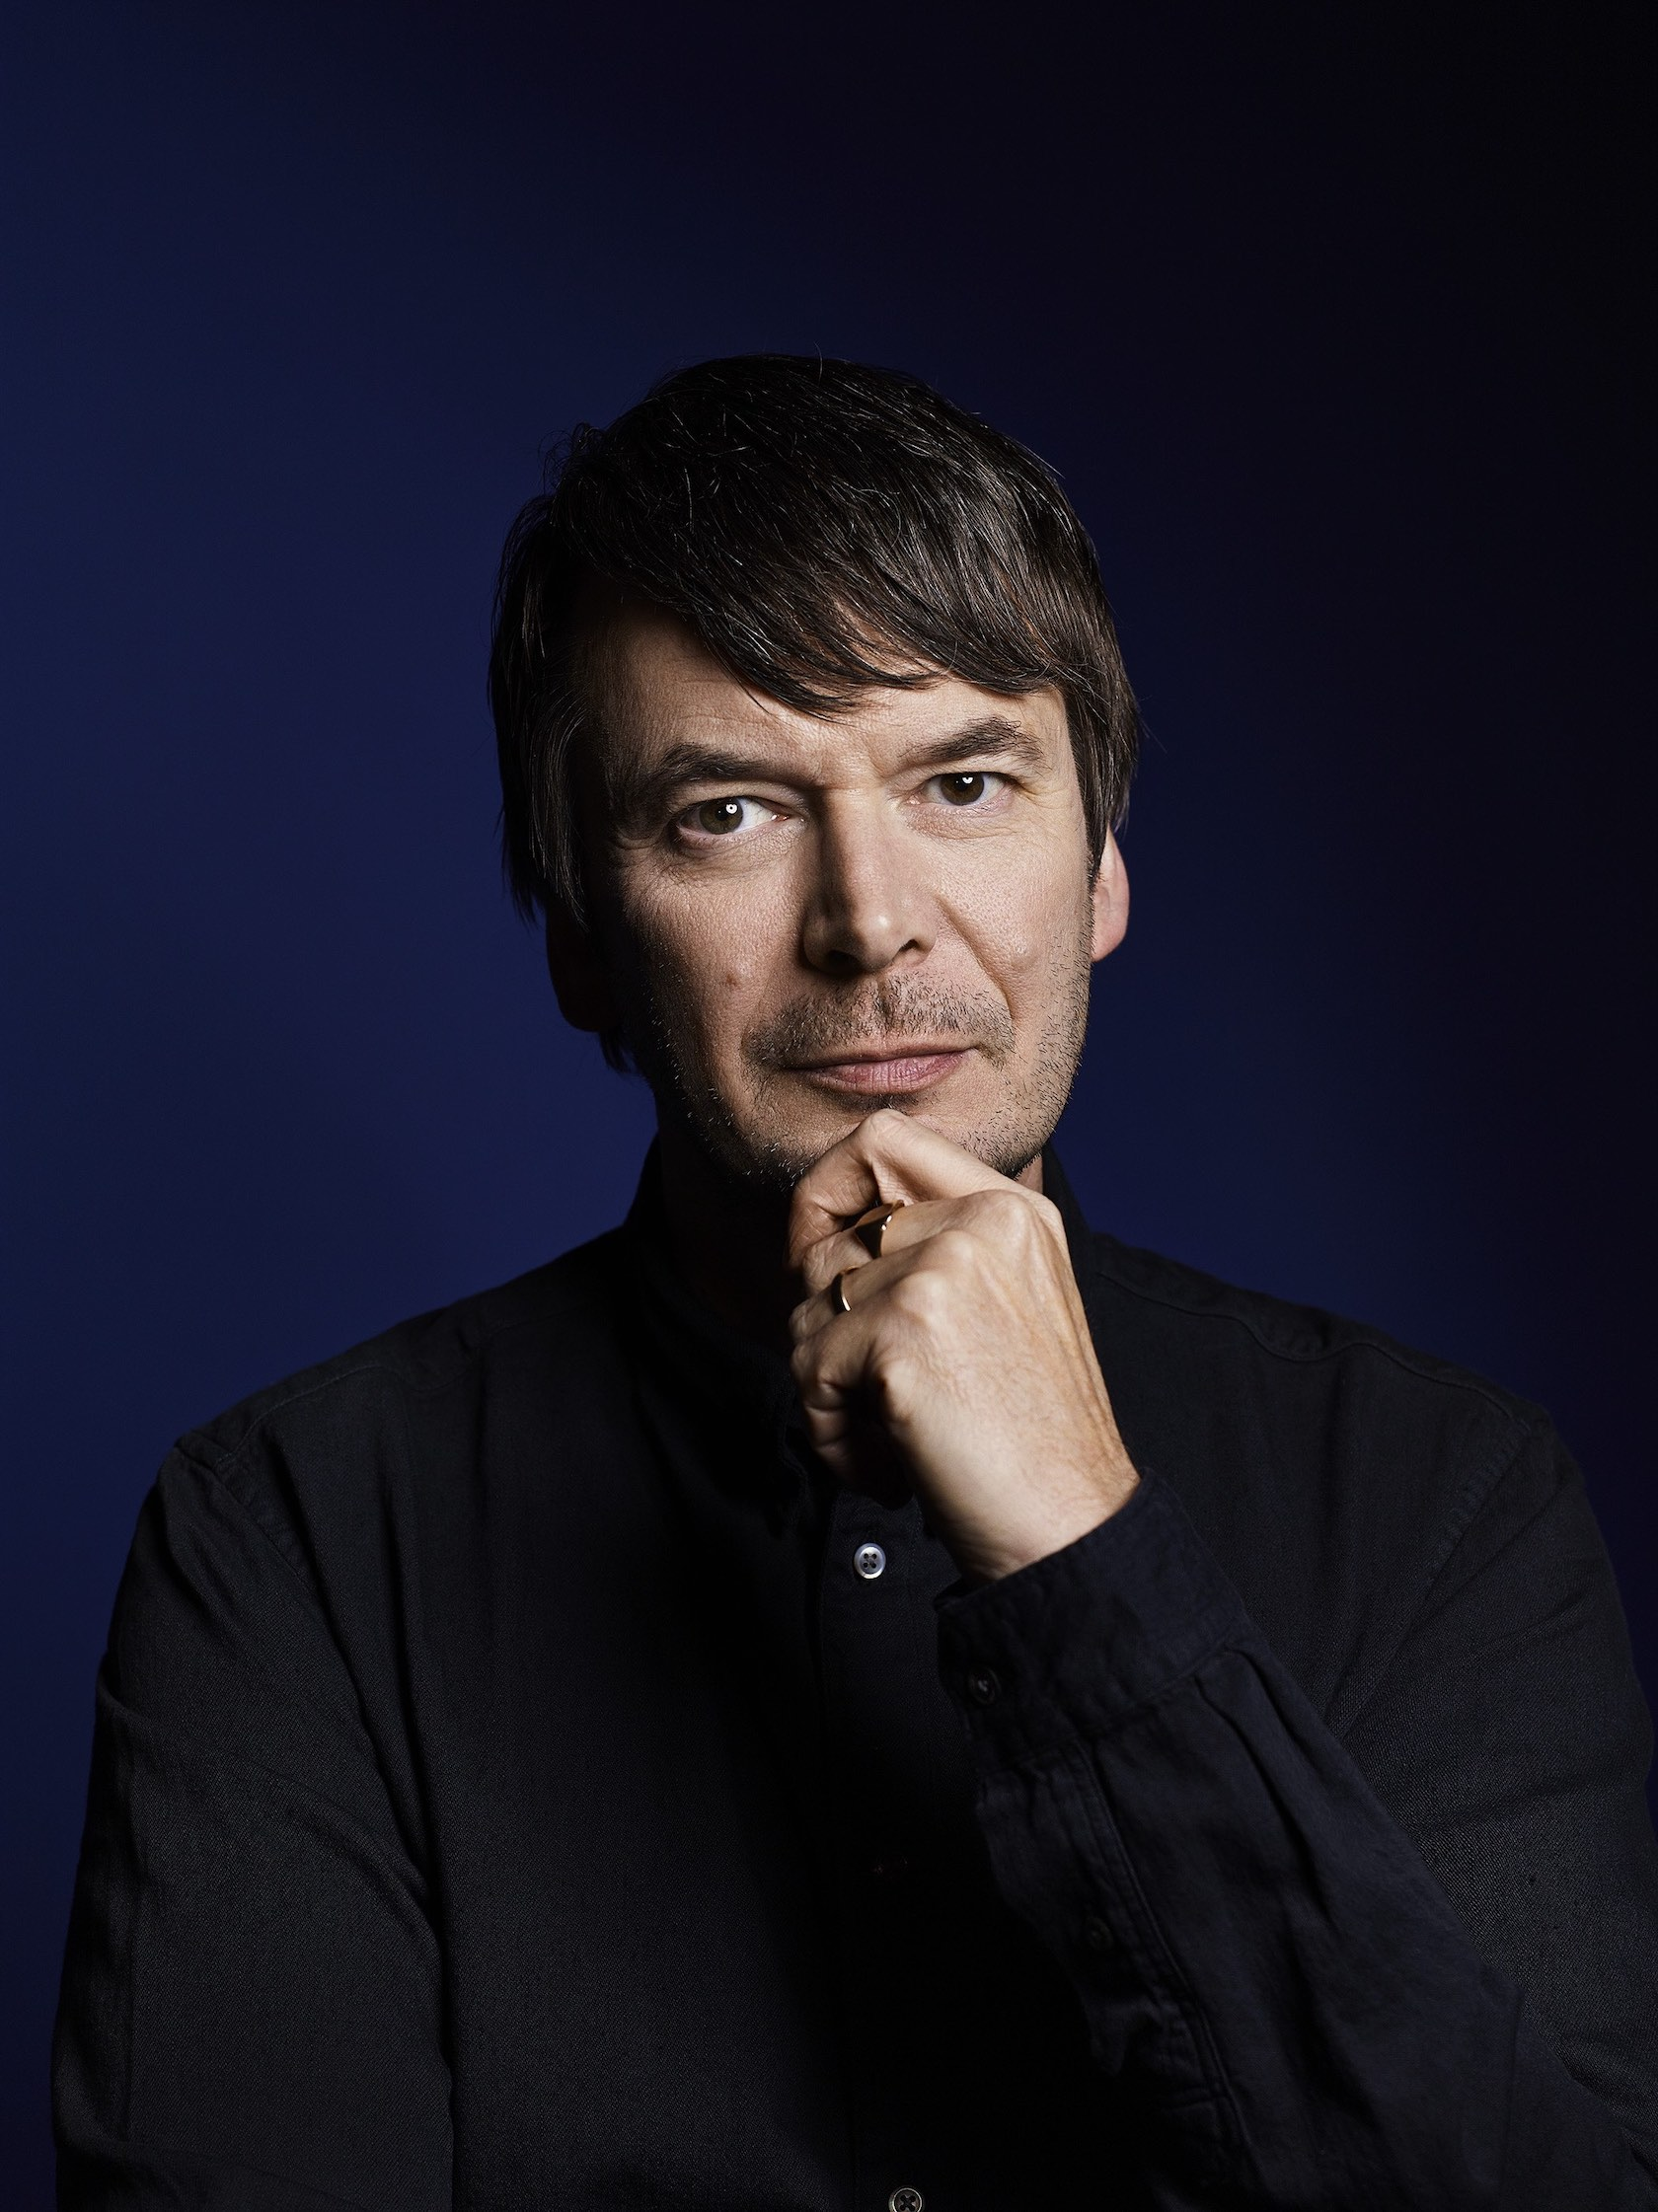 Ian Rankin (c) Hamish Brown copy.jpg